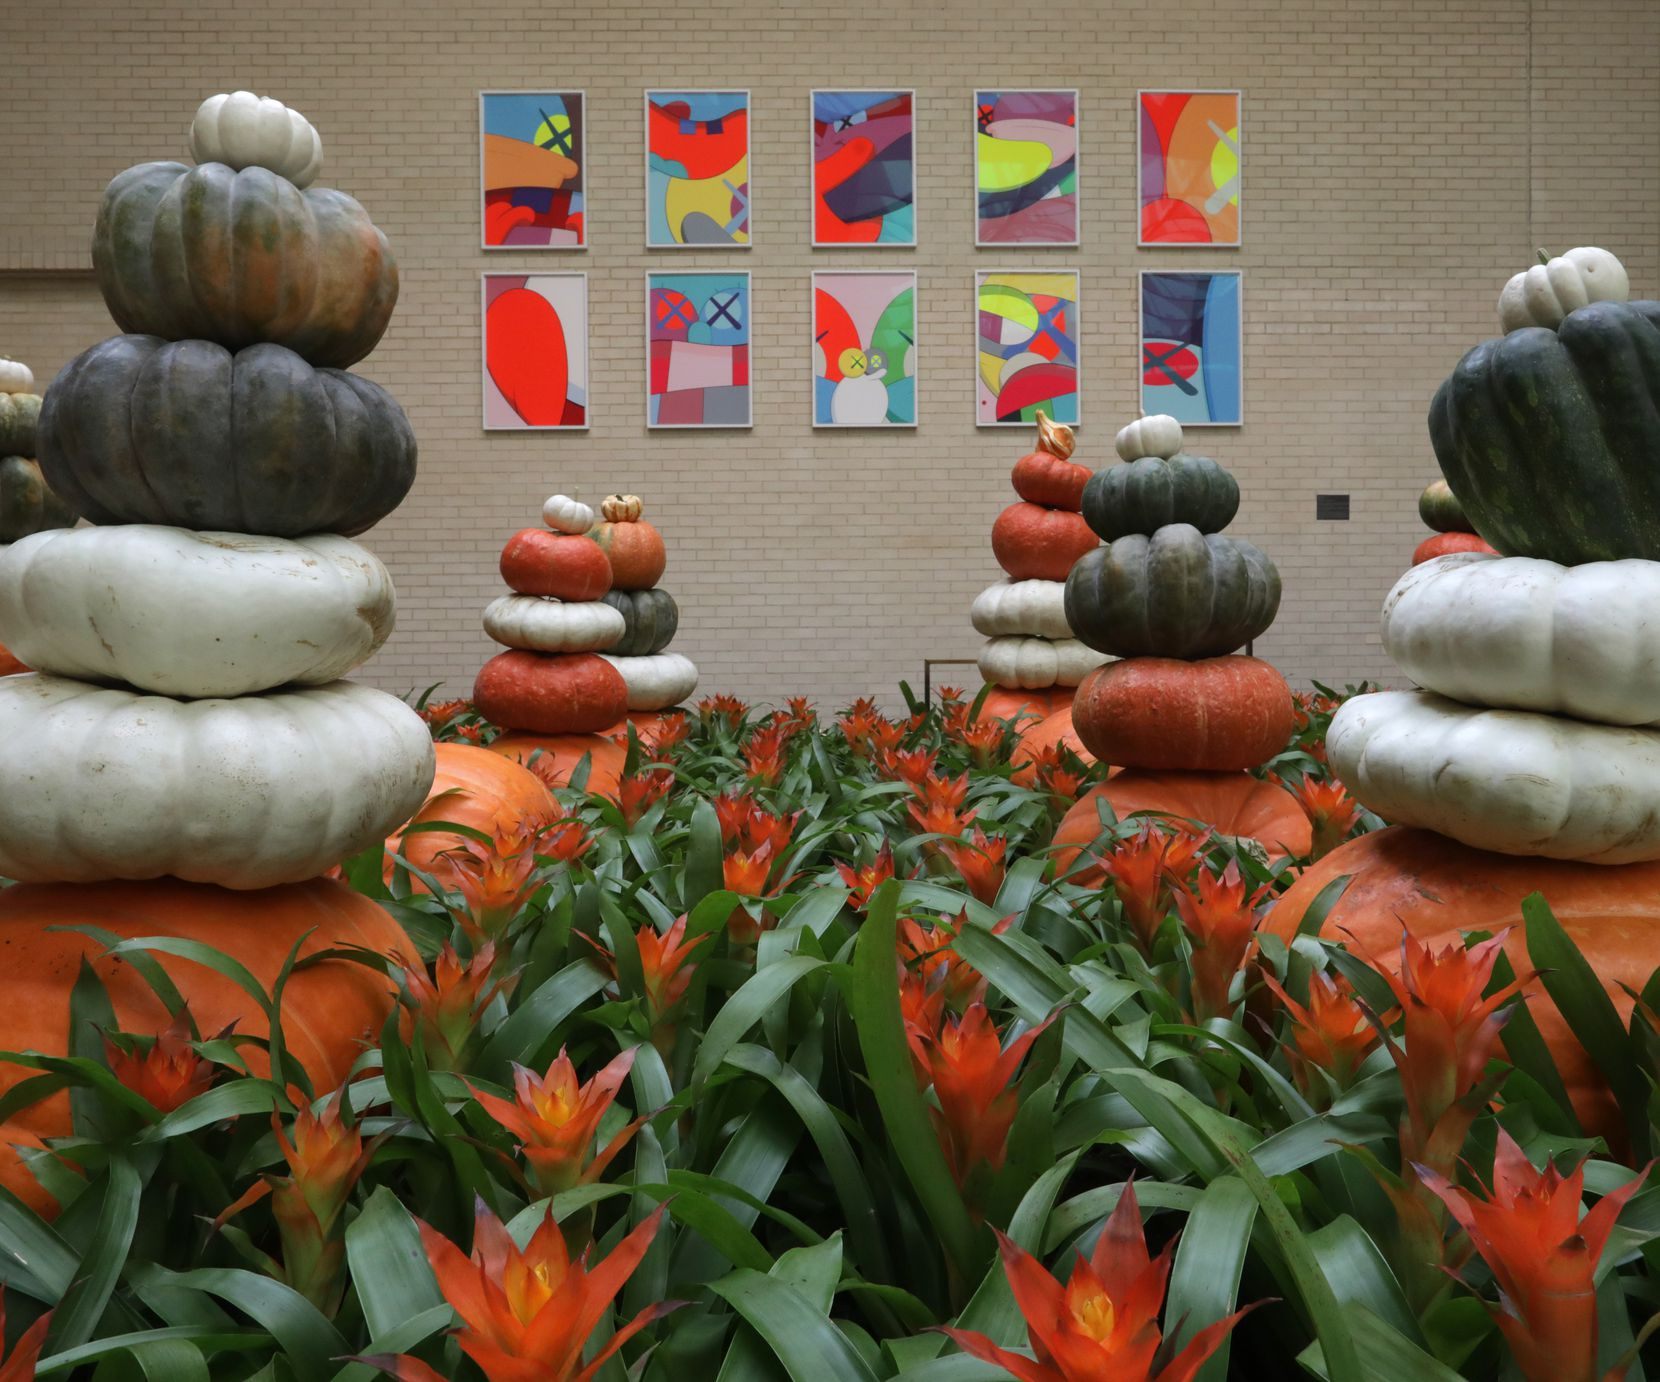 The new seasonal landscaping displays at NorthPark Center in Dallas.